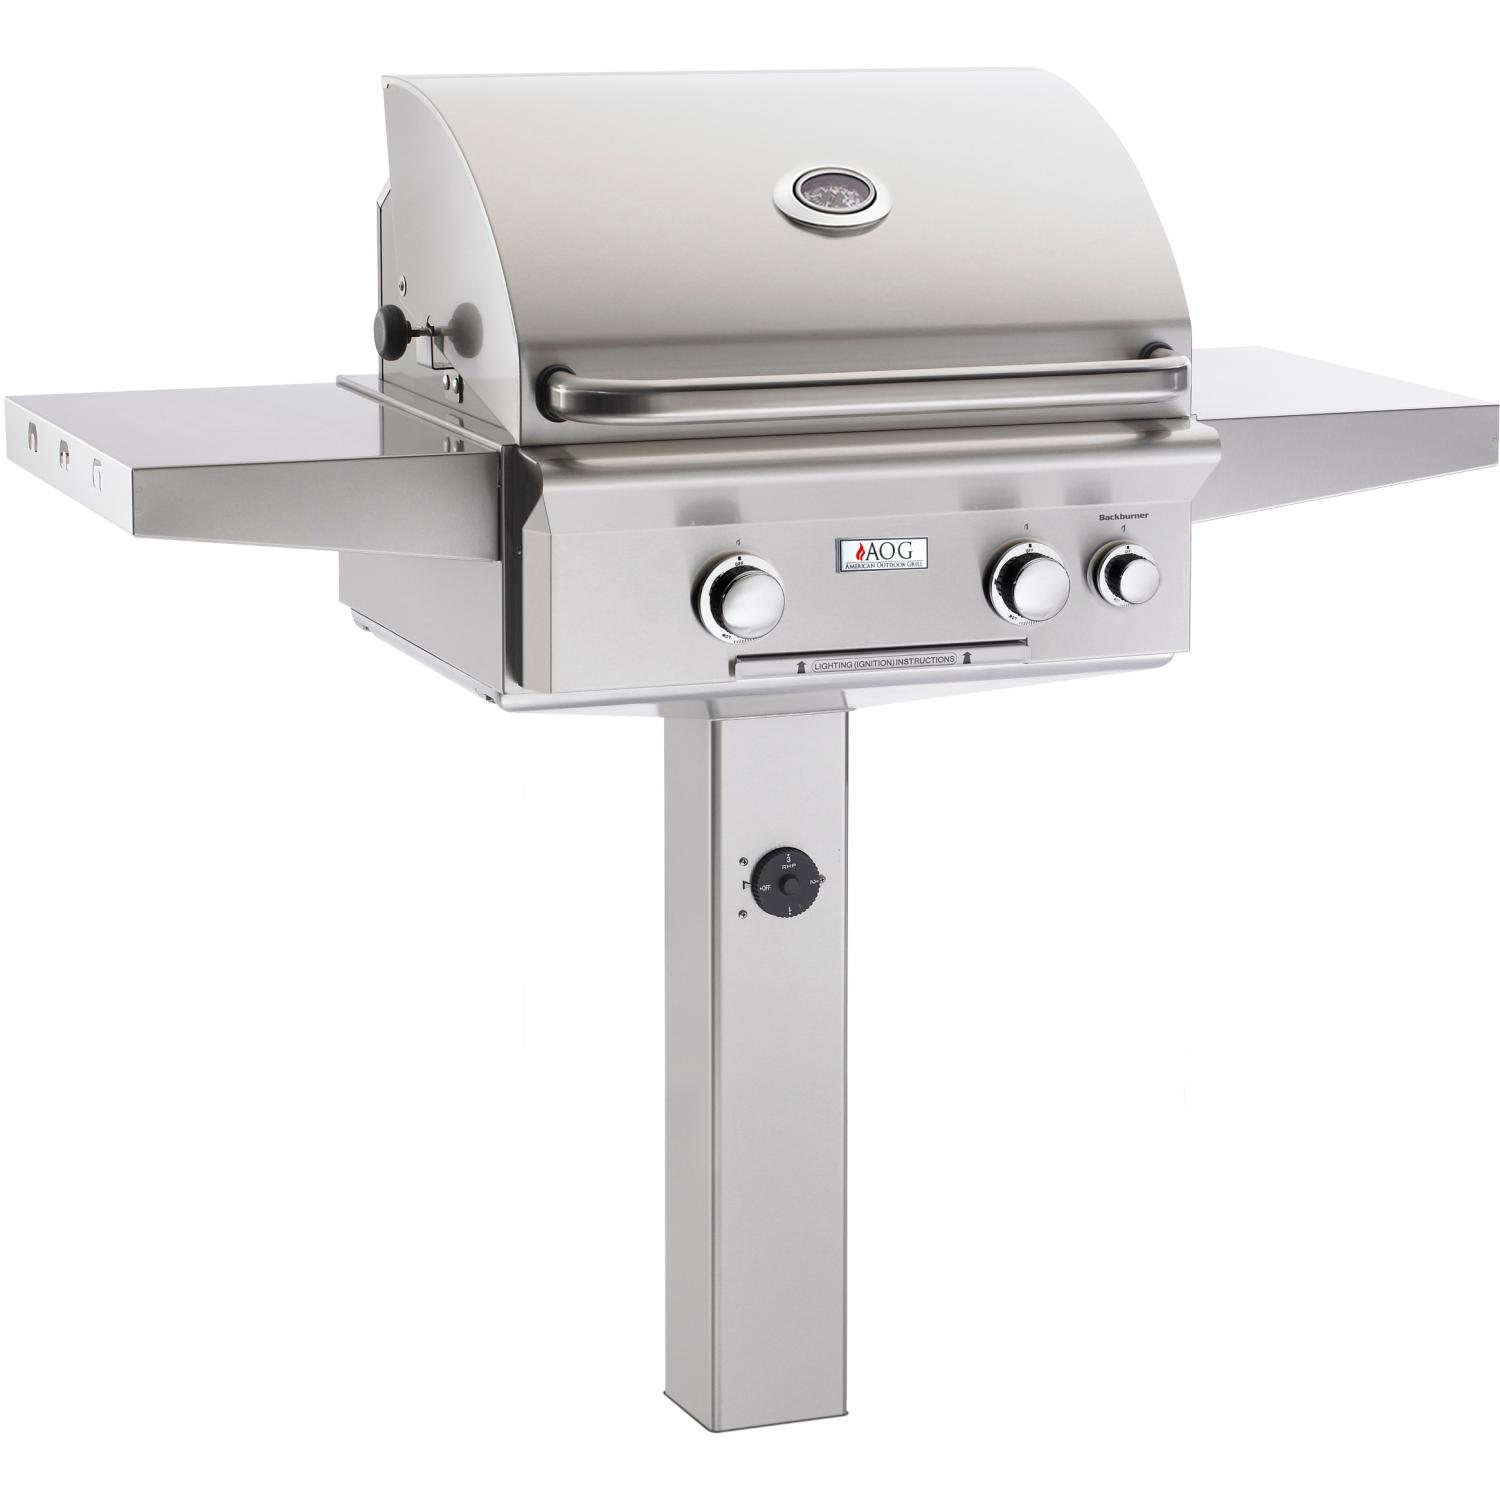 American Outdoor Grill L-Series 24-Inch Propane Grill On In-Ground Post With Rotisserie 2894684